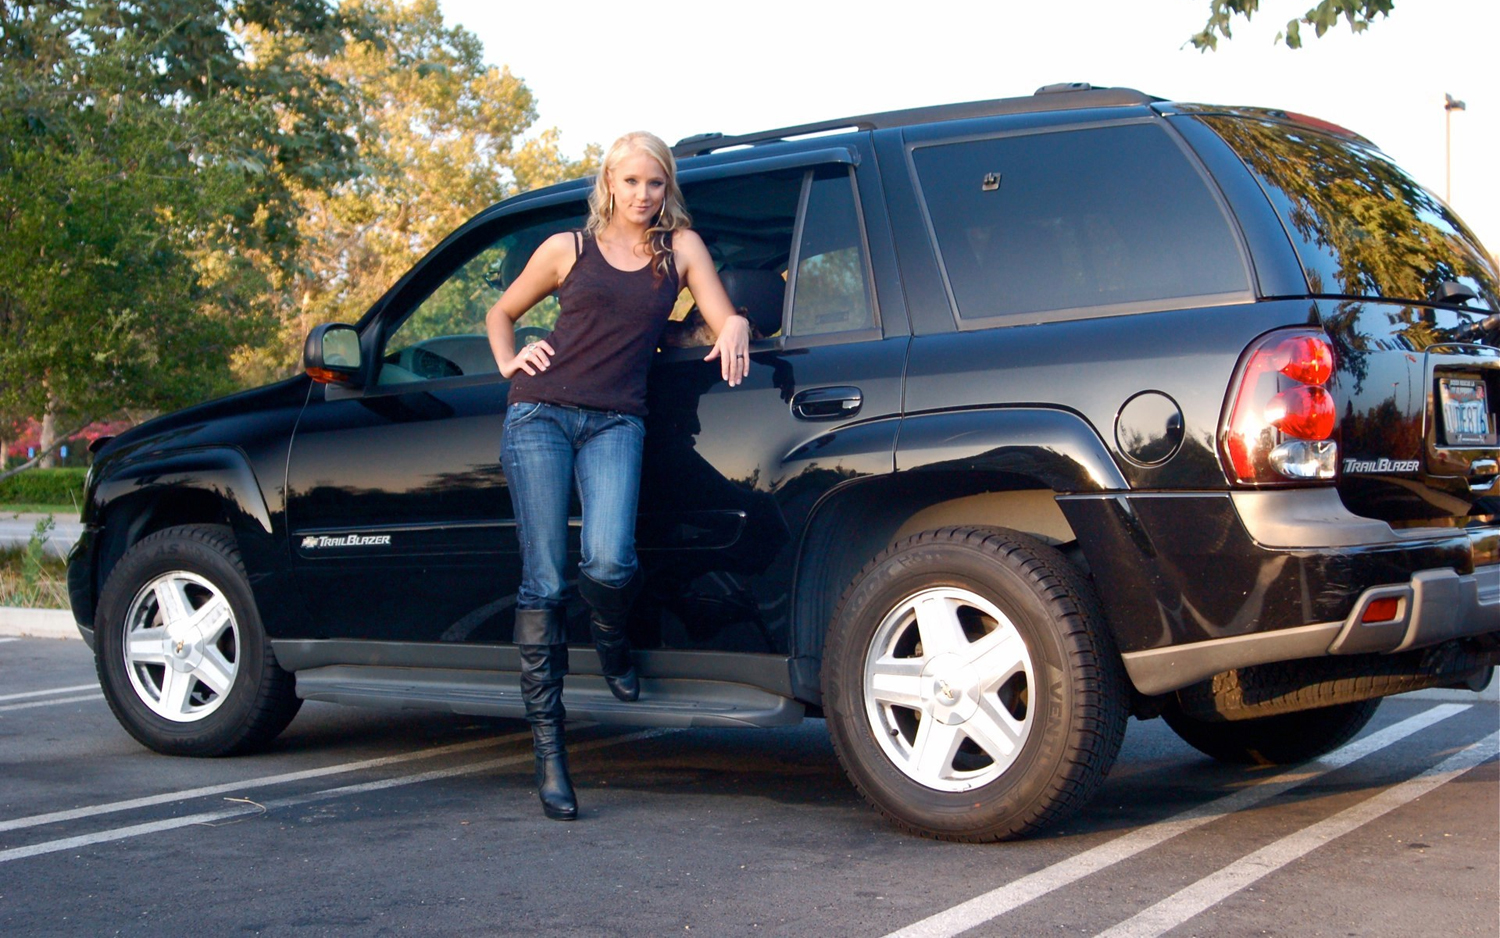 medium resolution of celebrity drive actress kristen renton of fx s sons of anarchy chevy trailblazer